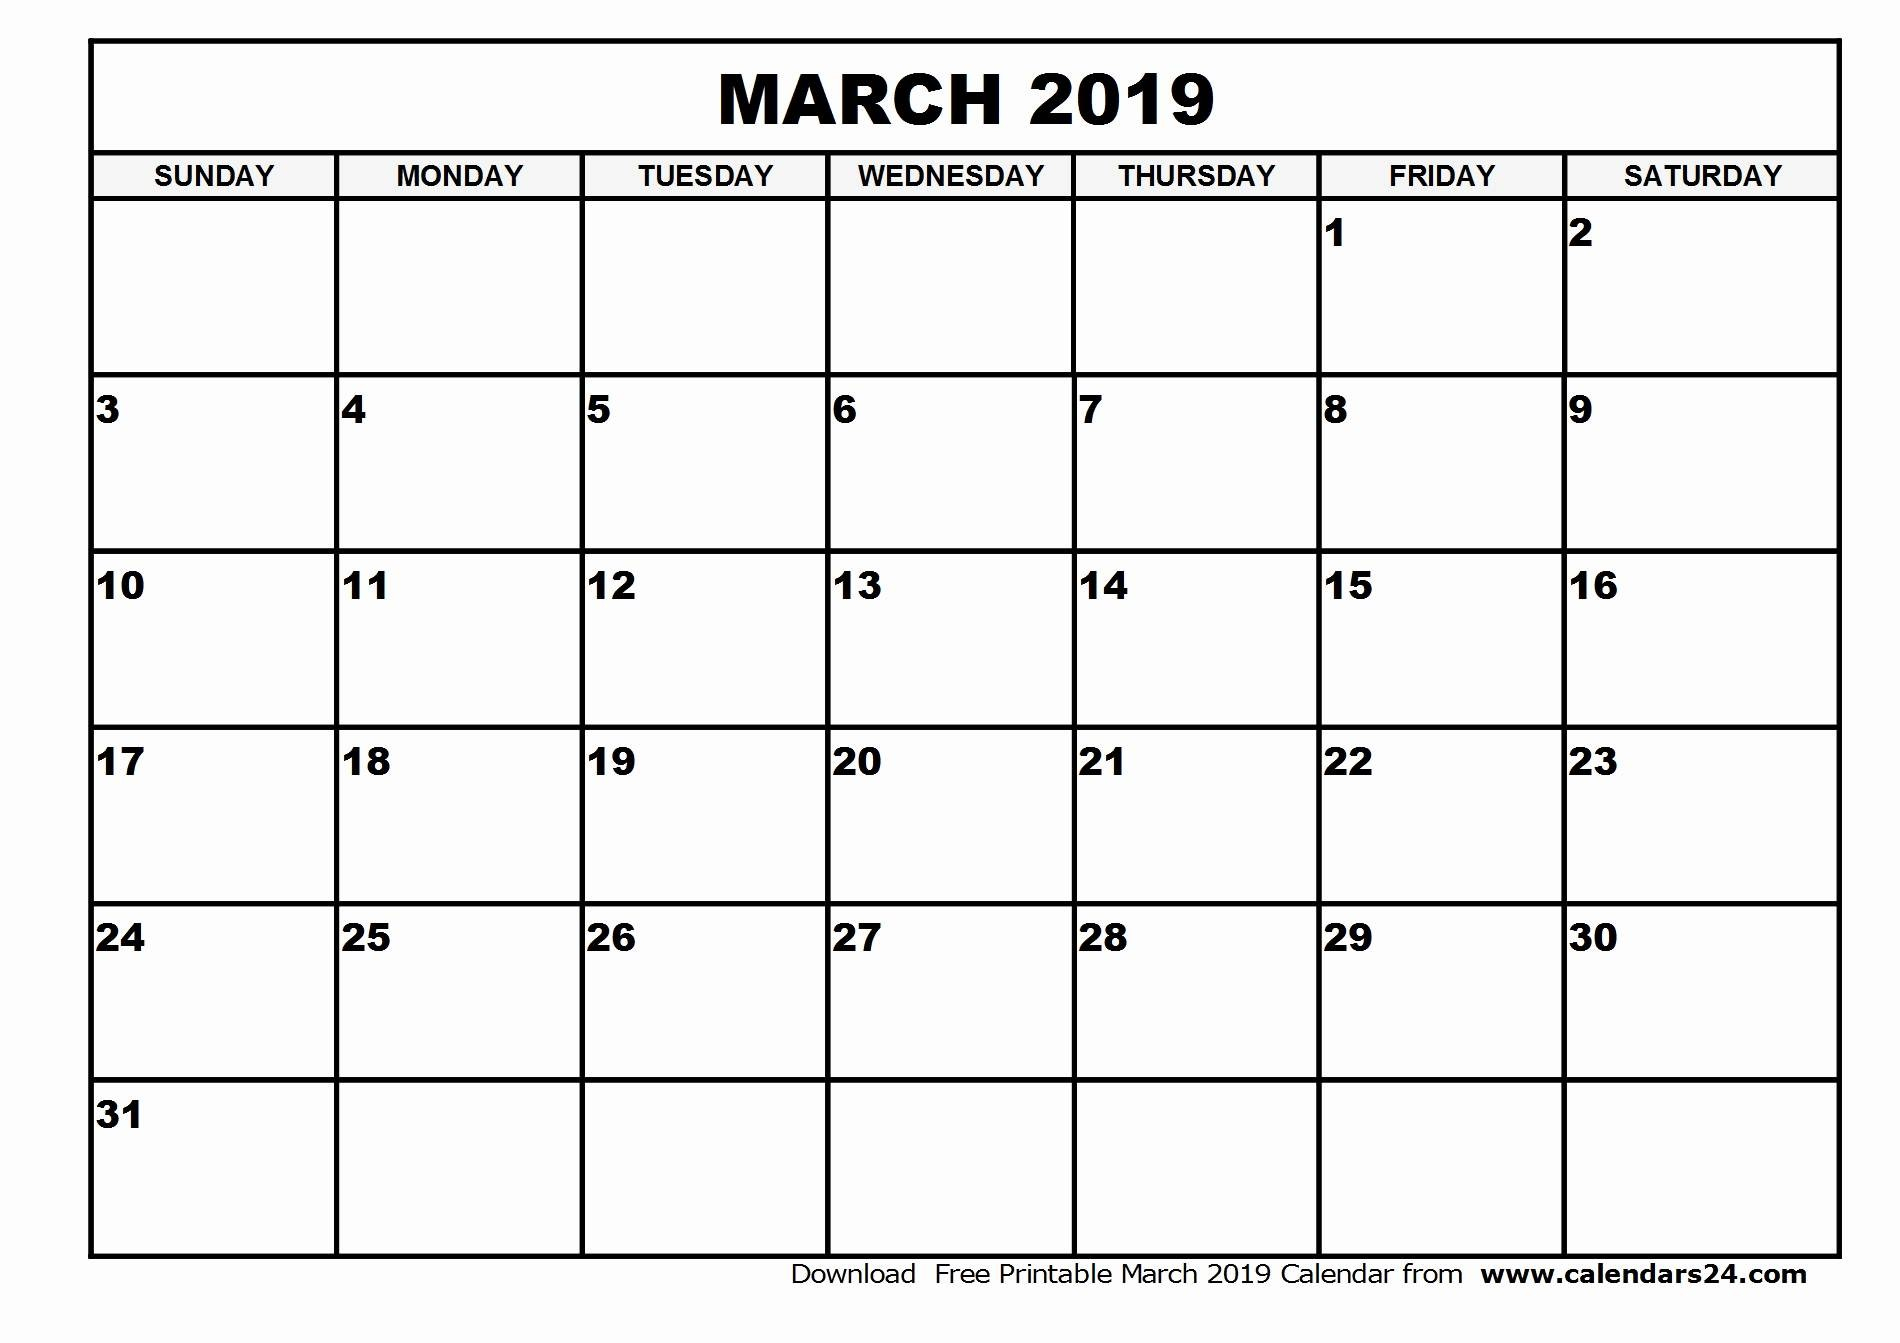 Free printable blank calendars grids are provided to print and download. Printable Monthly Calander Sheets | Example Calendar Printable